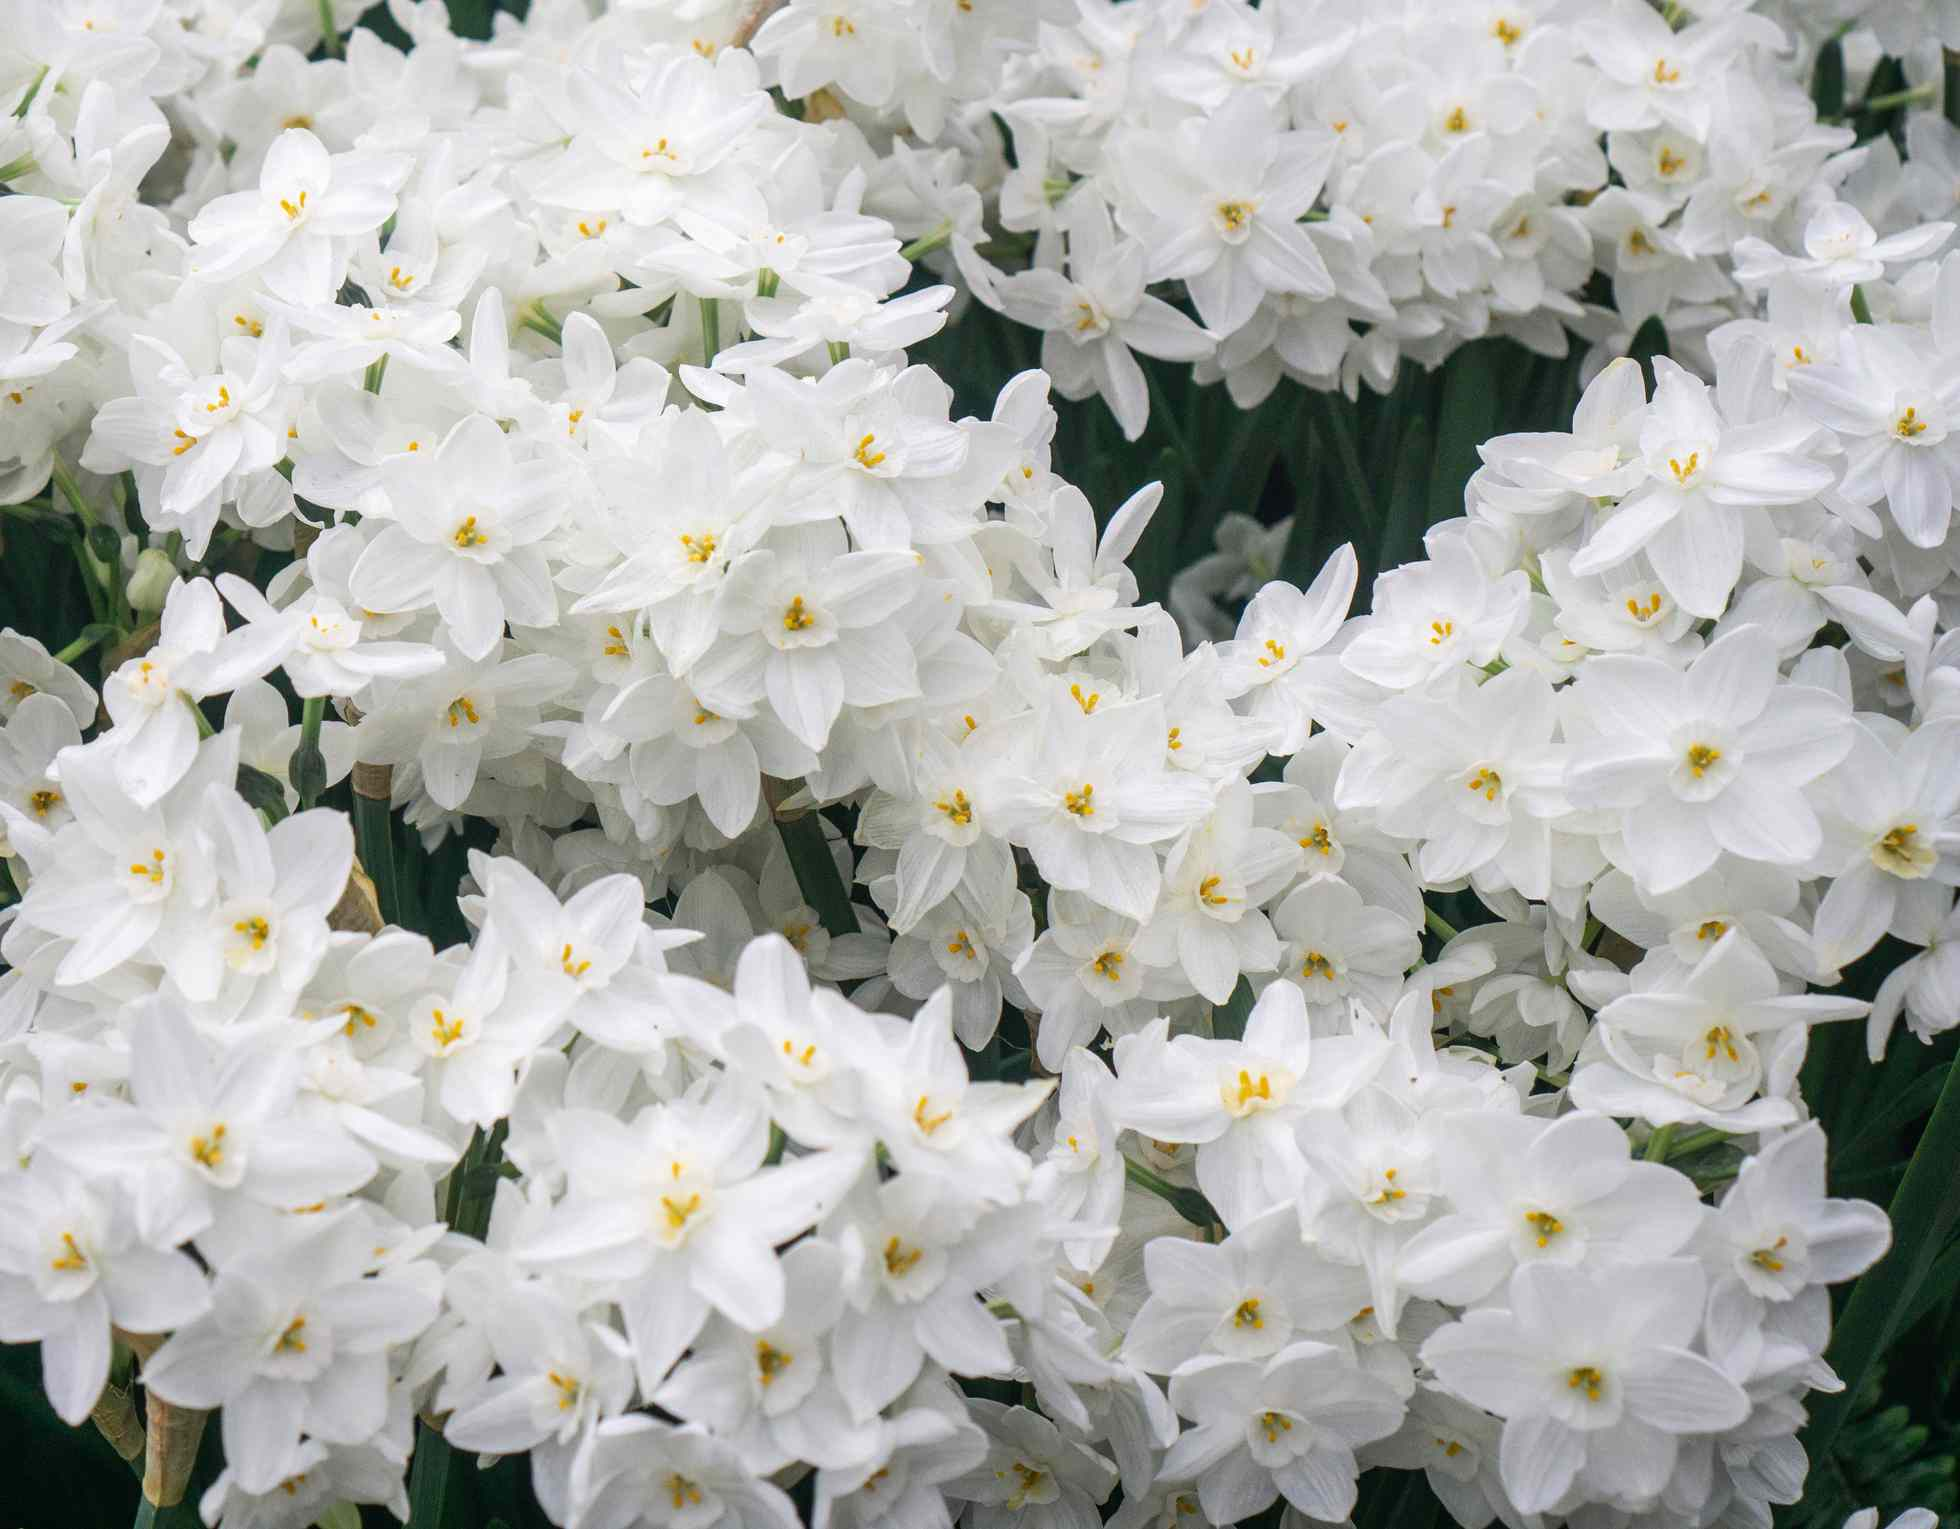 Close-up of several paperwhite narcissus plants blooming with white flowers and yellow centers